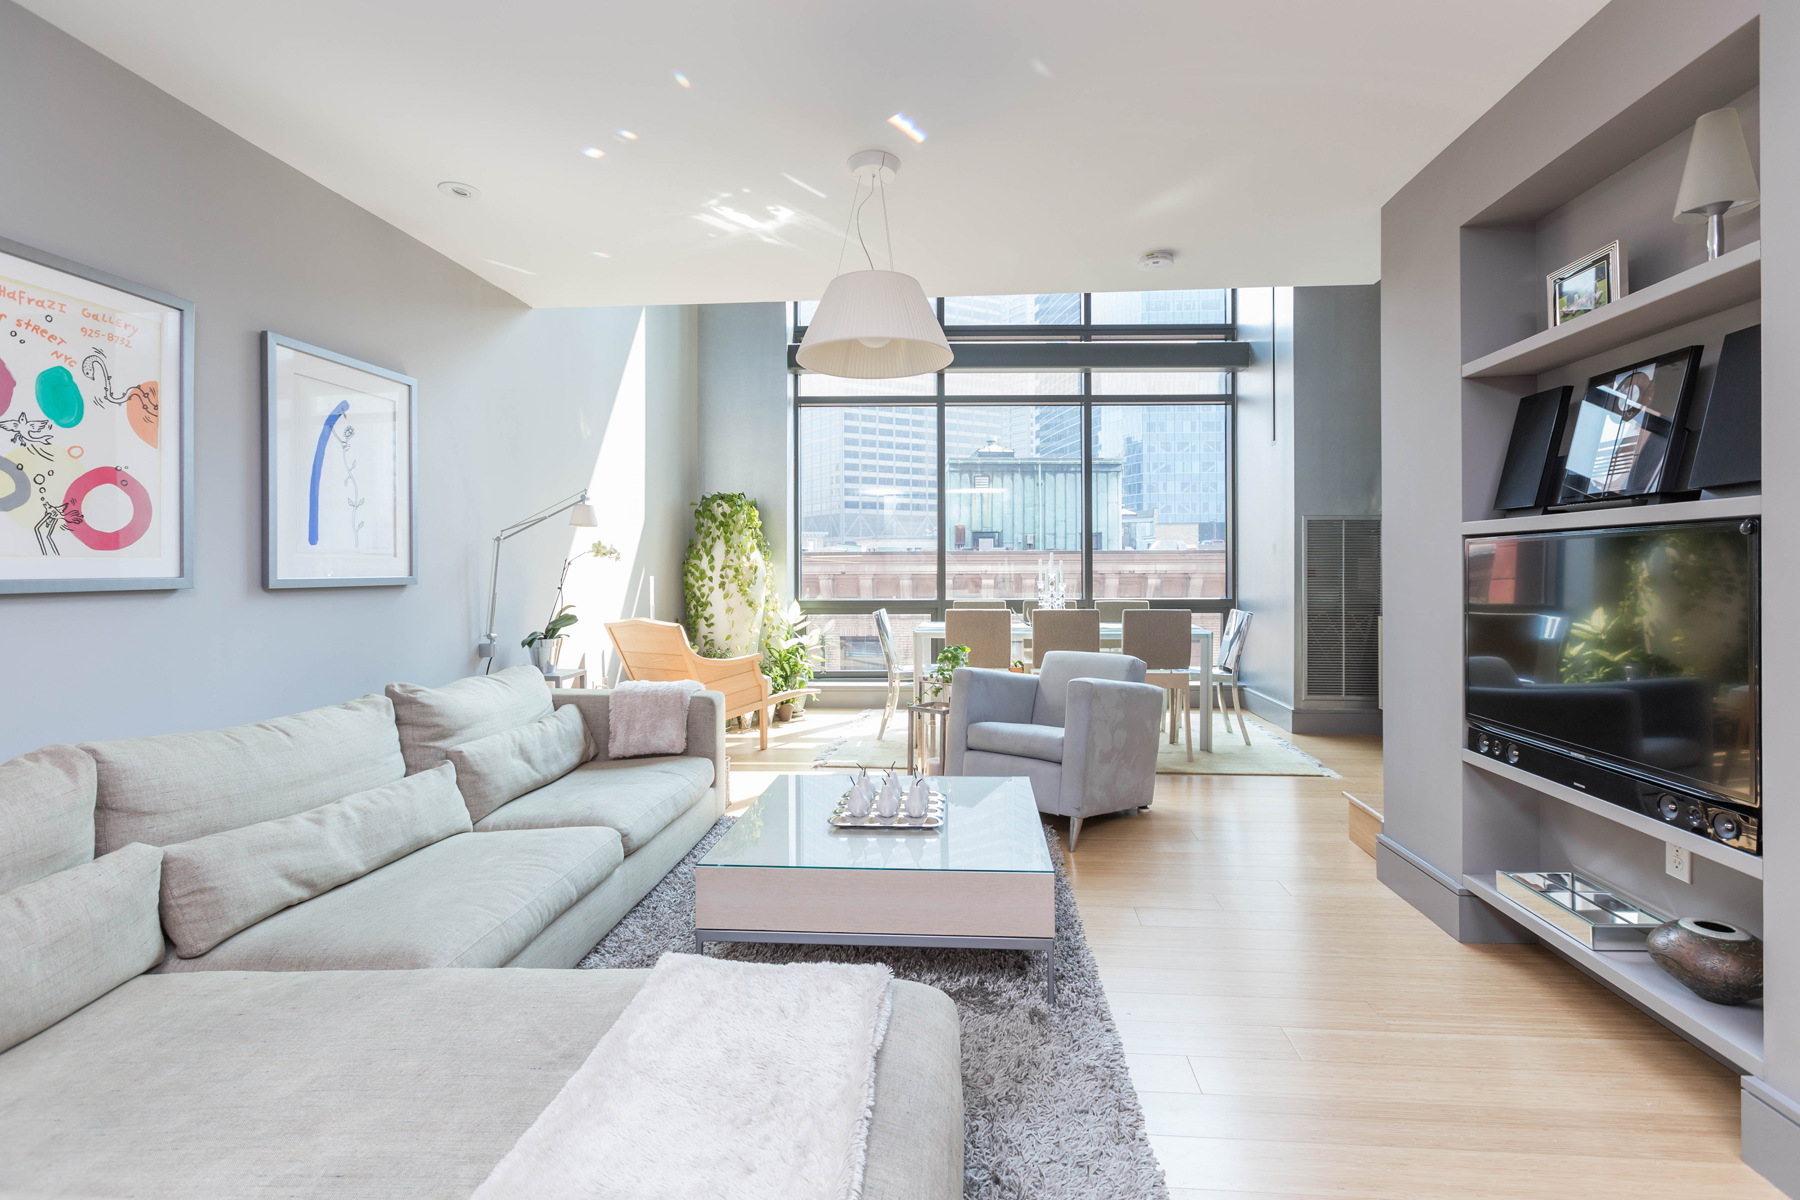 Property For Sale at Architecturally Stunning Duplex Loft